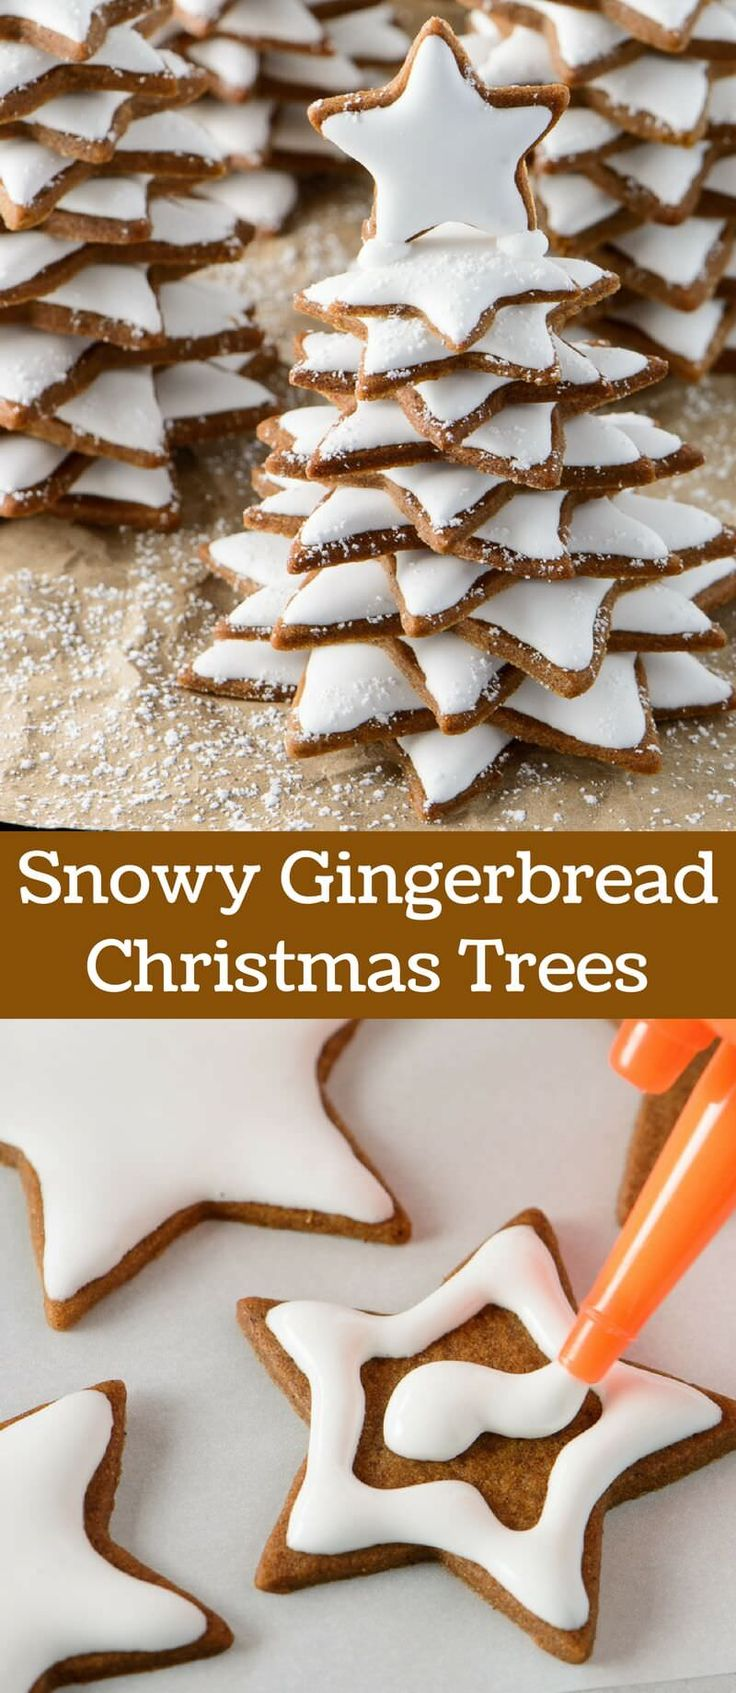 Soft Snowy Gingerbread Christmas Trees make a wonderful holiday gift. Turn a traditional Christmas cookie into a fun and magical gift.  via @introvertbaker